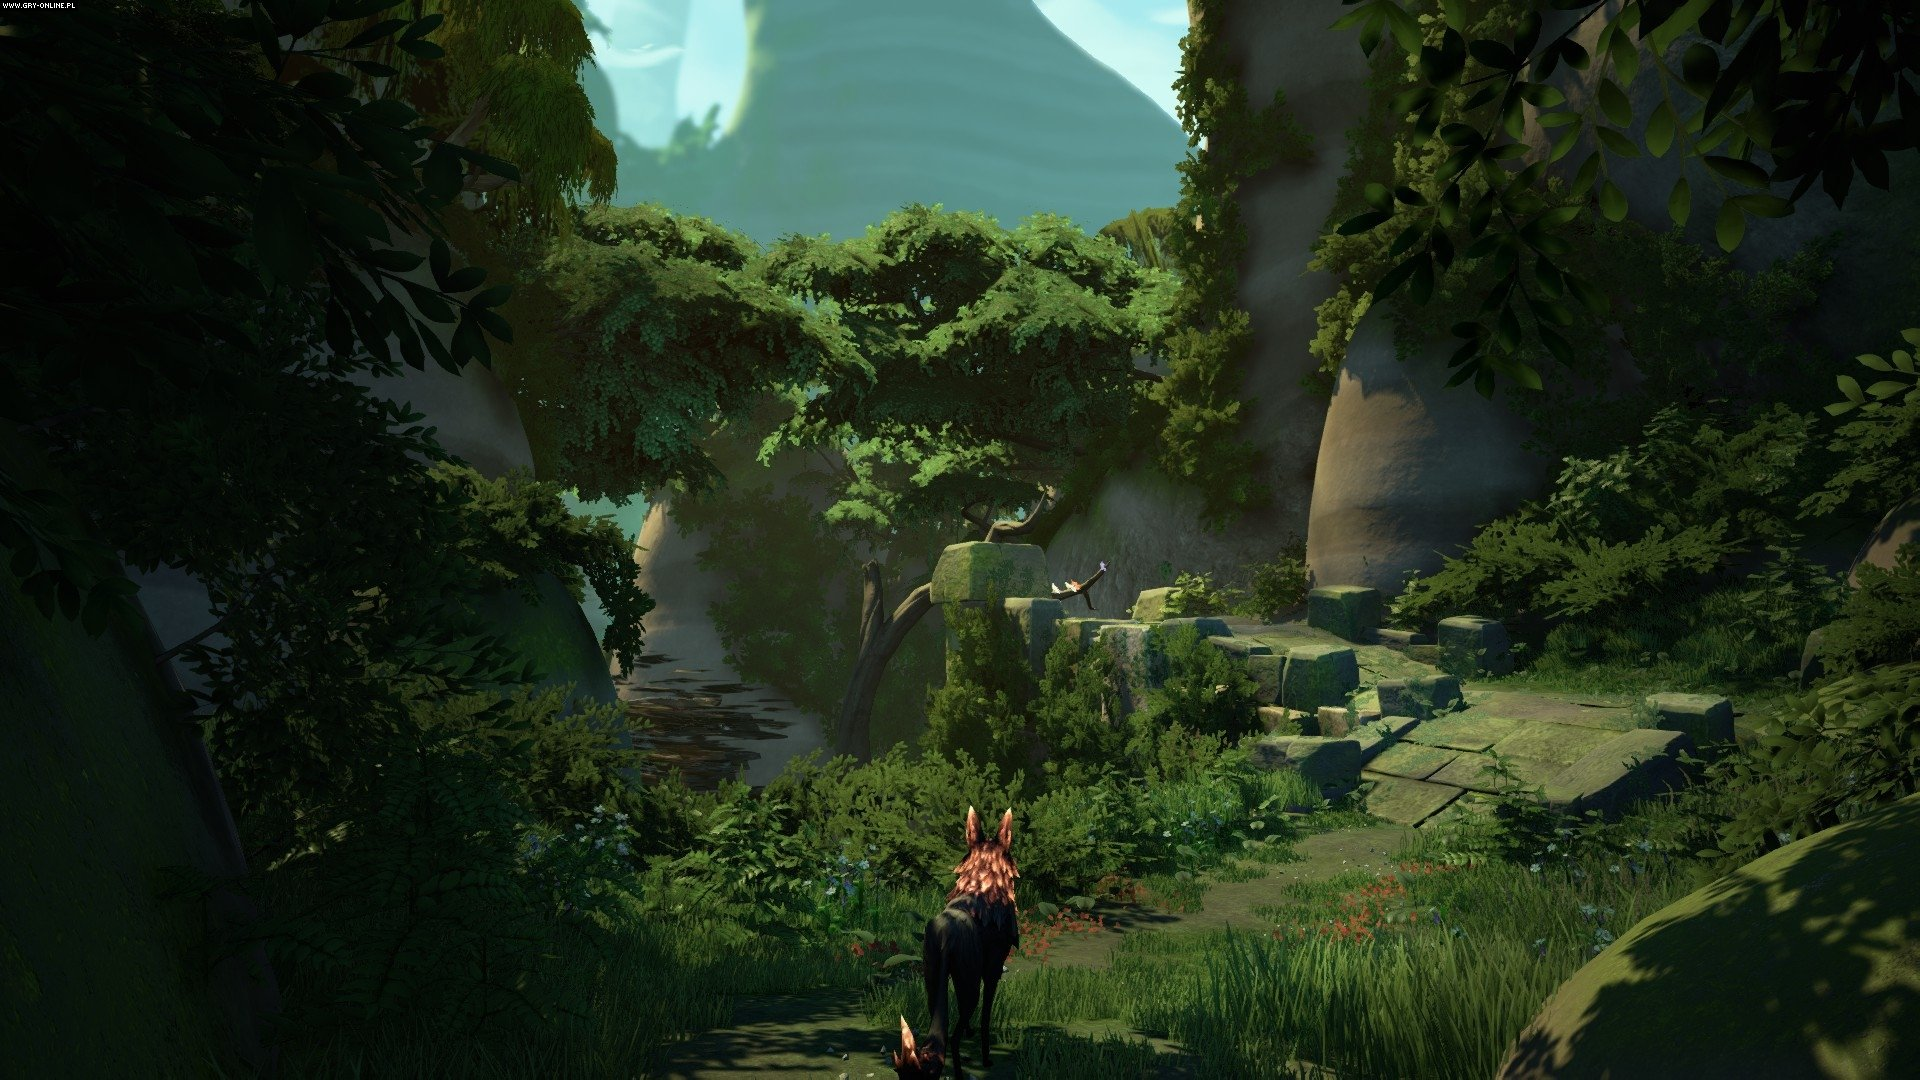 Lost Ember PC, PS4, XONE, Switch Games Image 35/42, Mooneye Studios